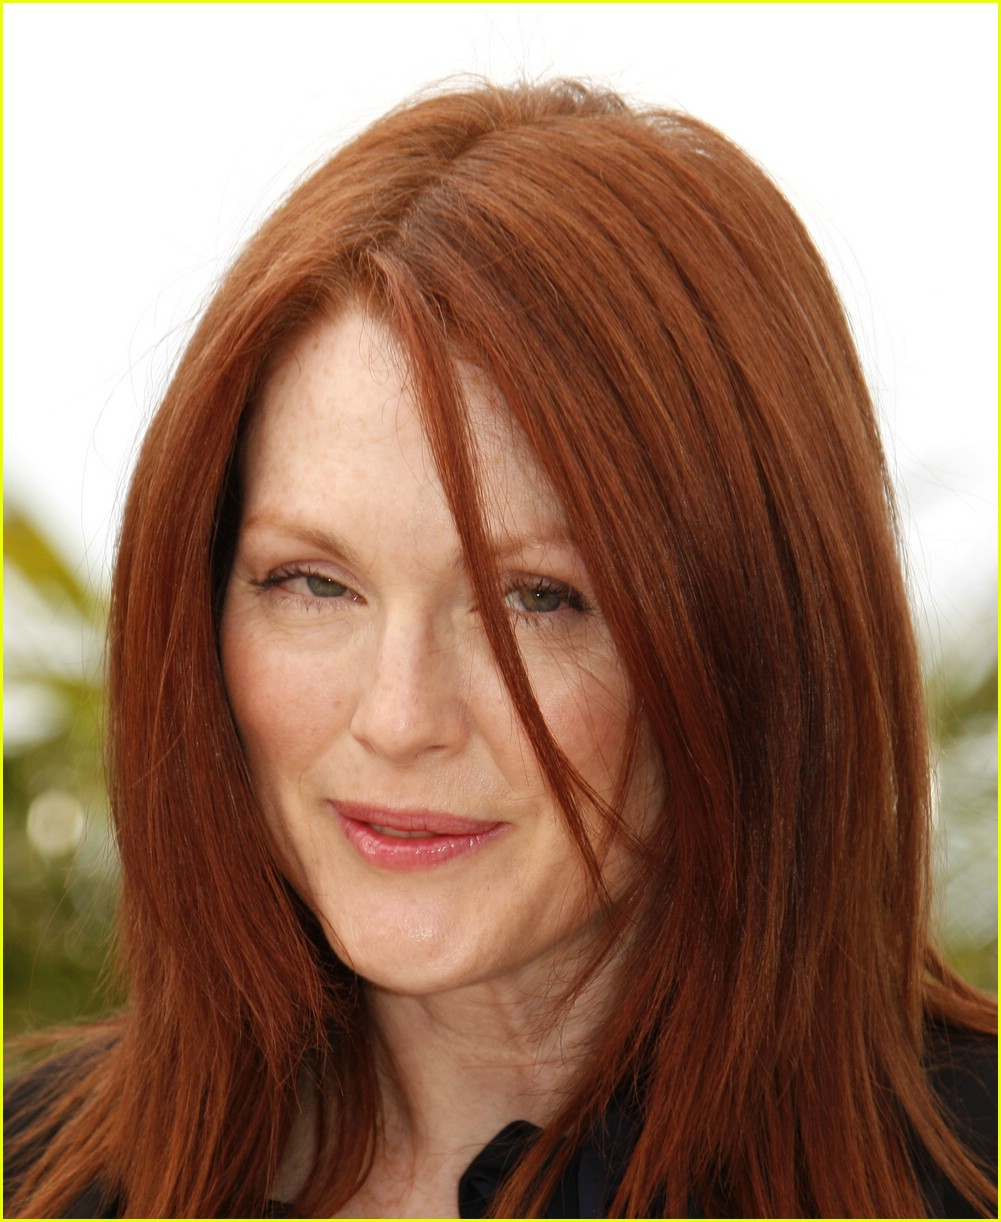 Julianne Moore - Wikipedia